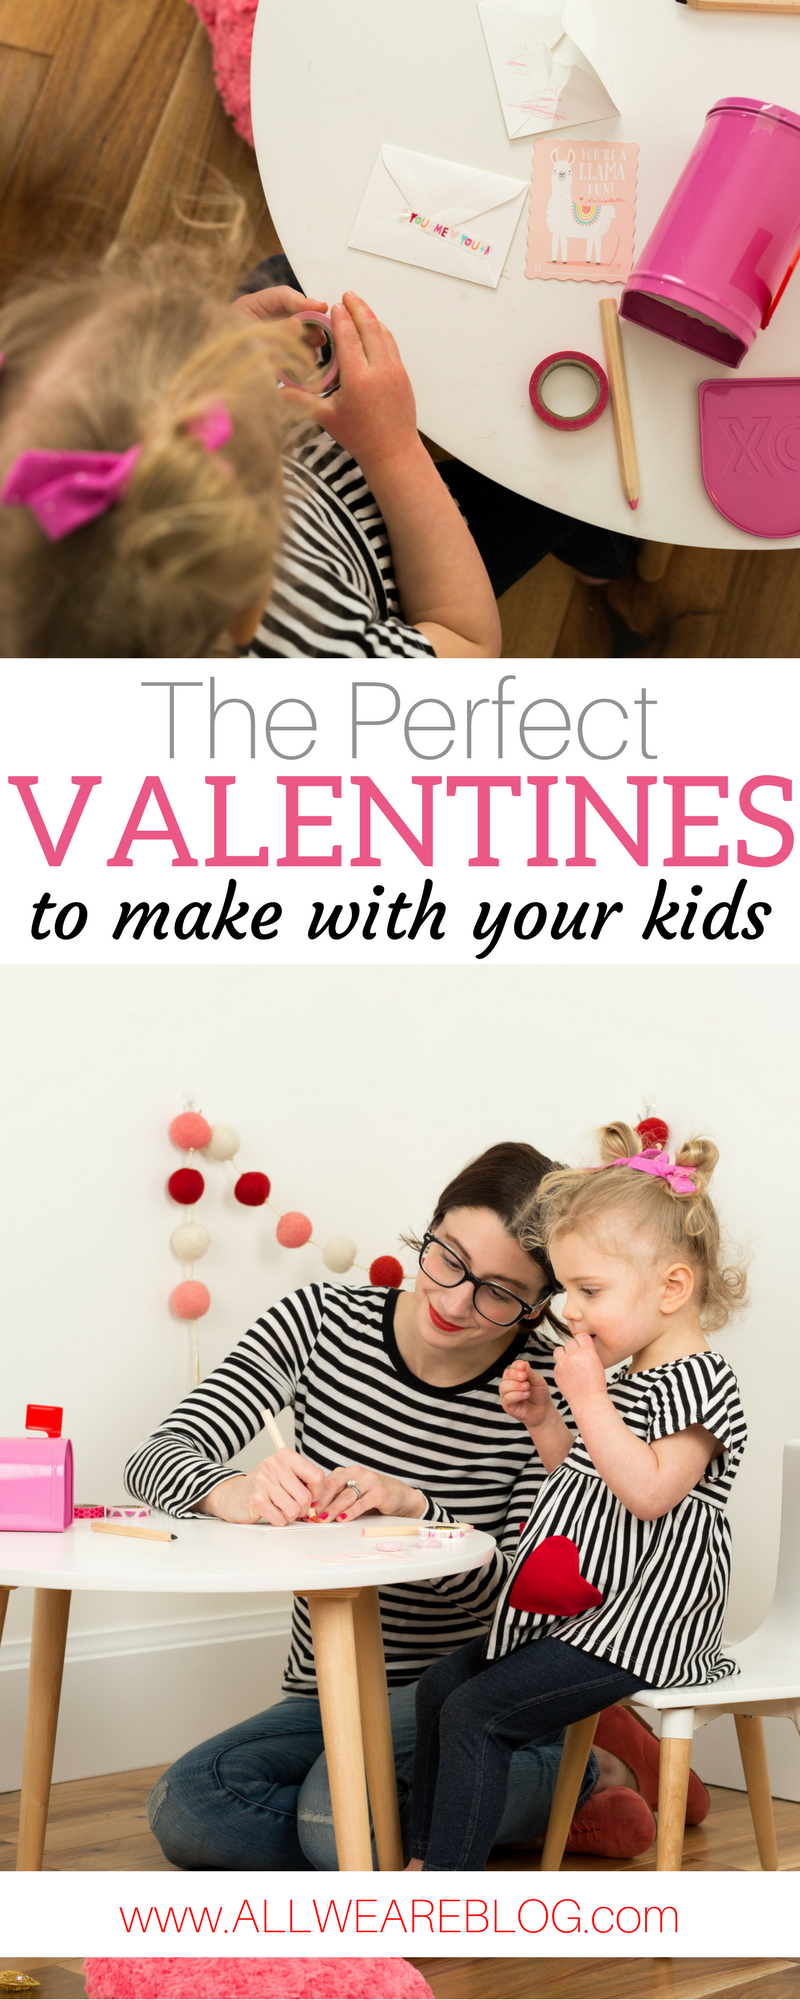 the perfect valentine's to make with your kids